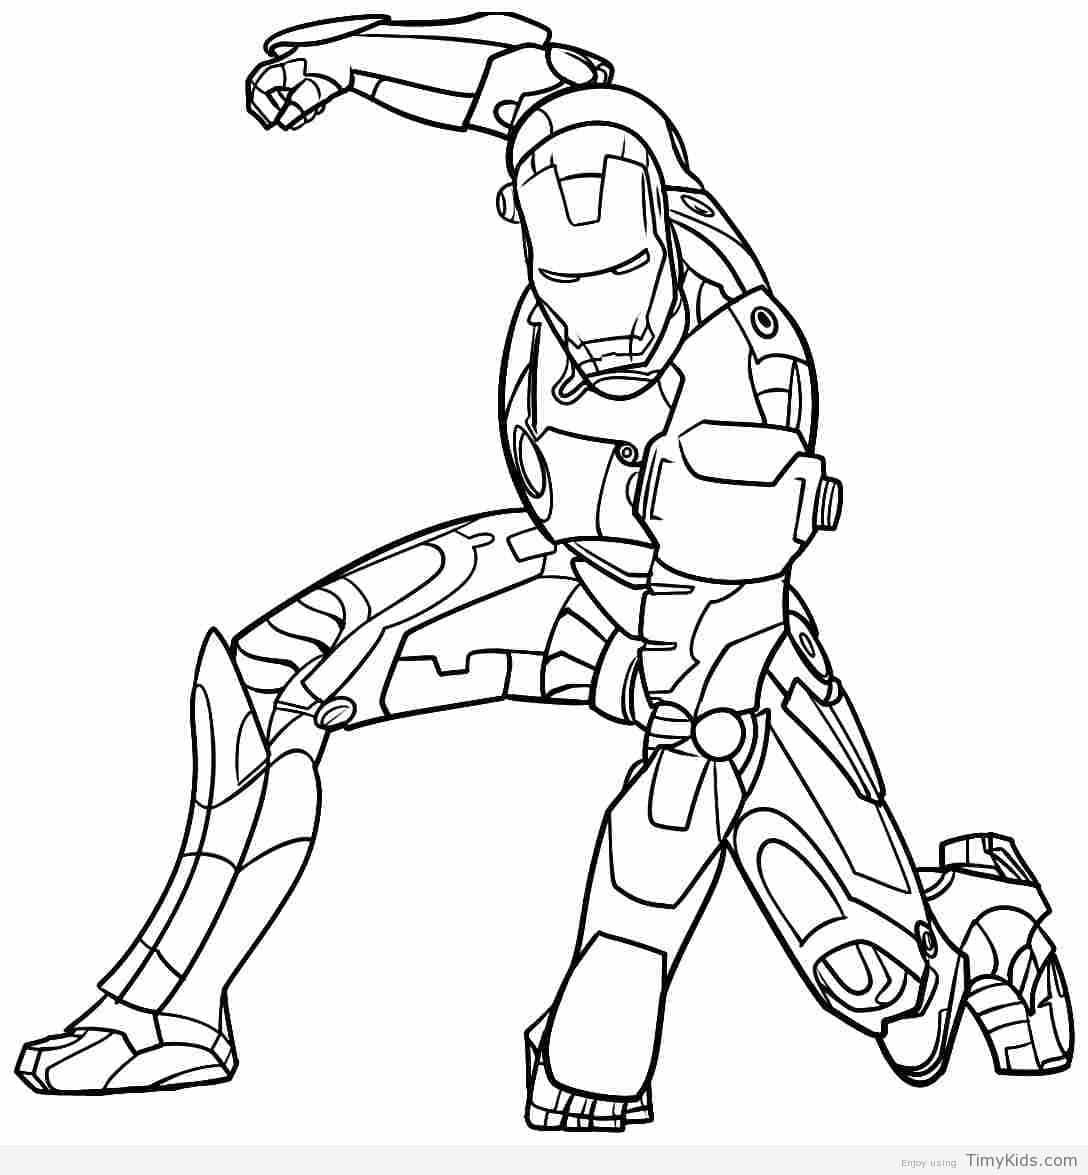 for Ironman coloring pages free